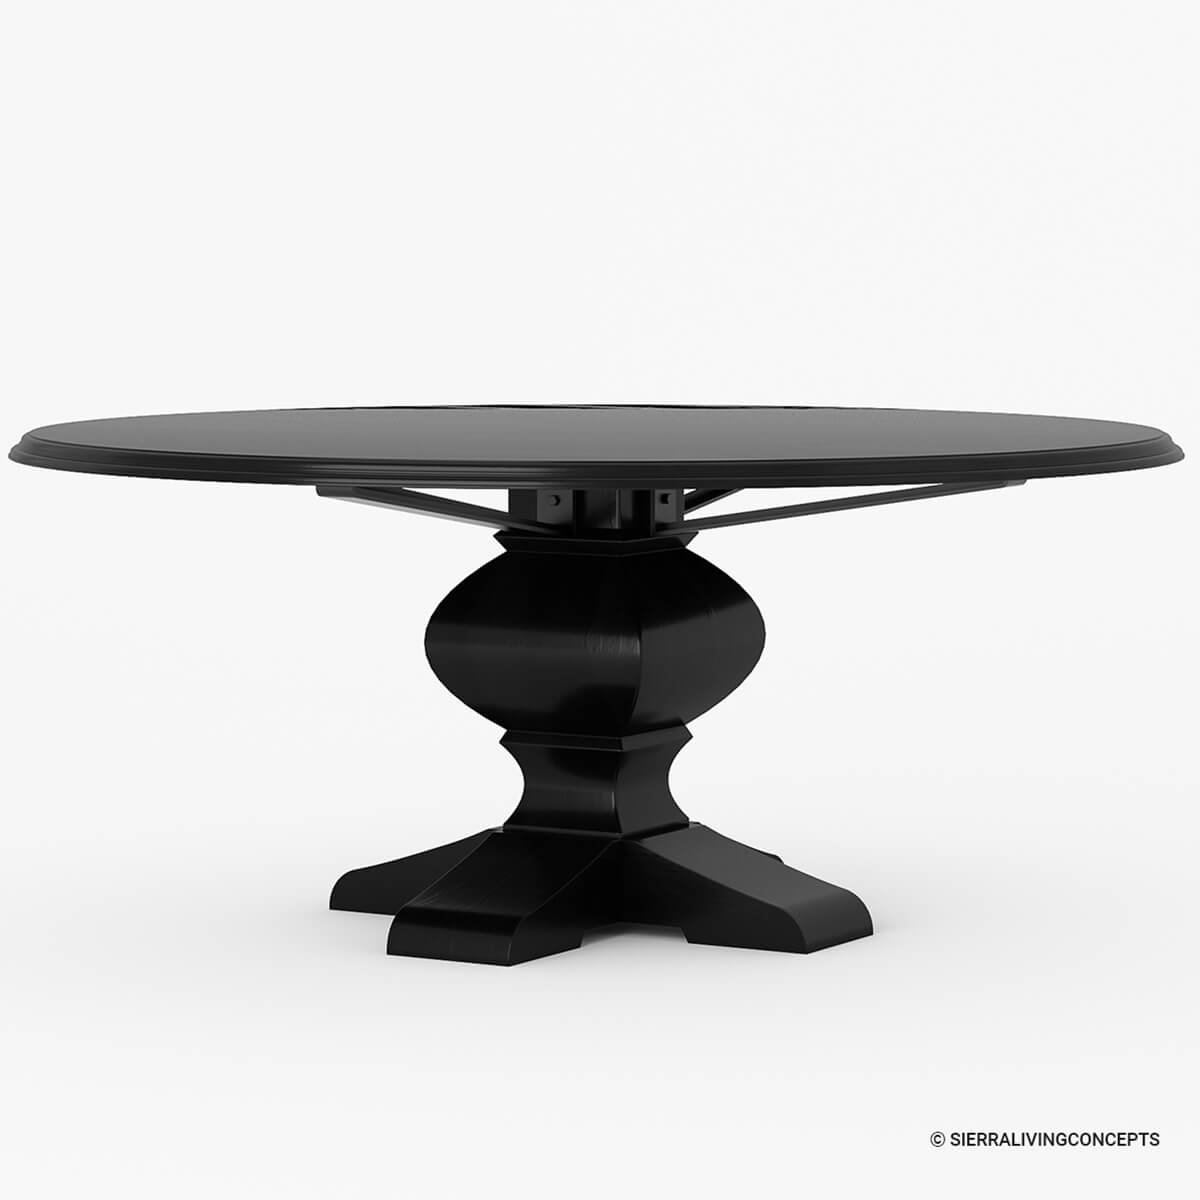 Sierra nevada rustic solid wood large round dining table Round dinner table for 10